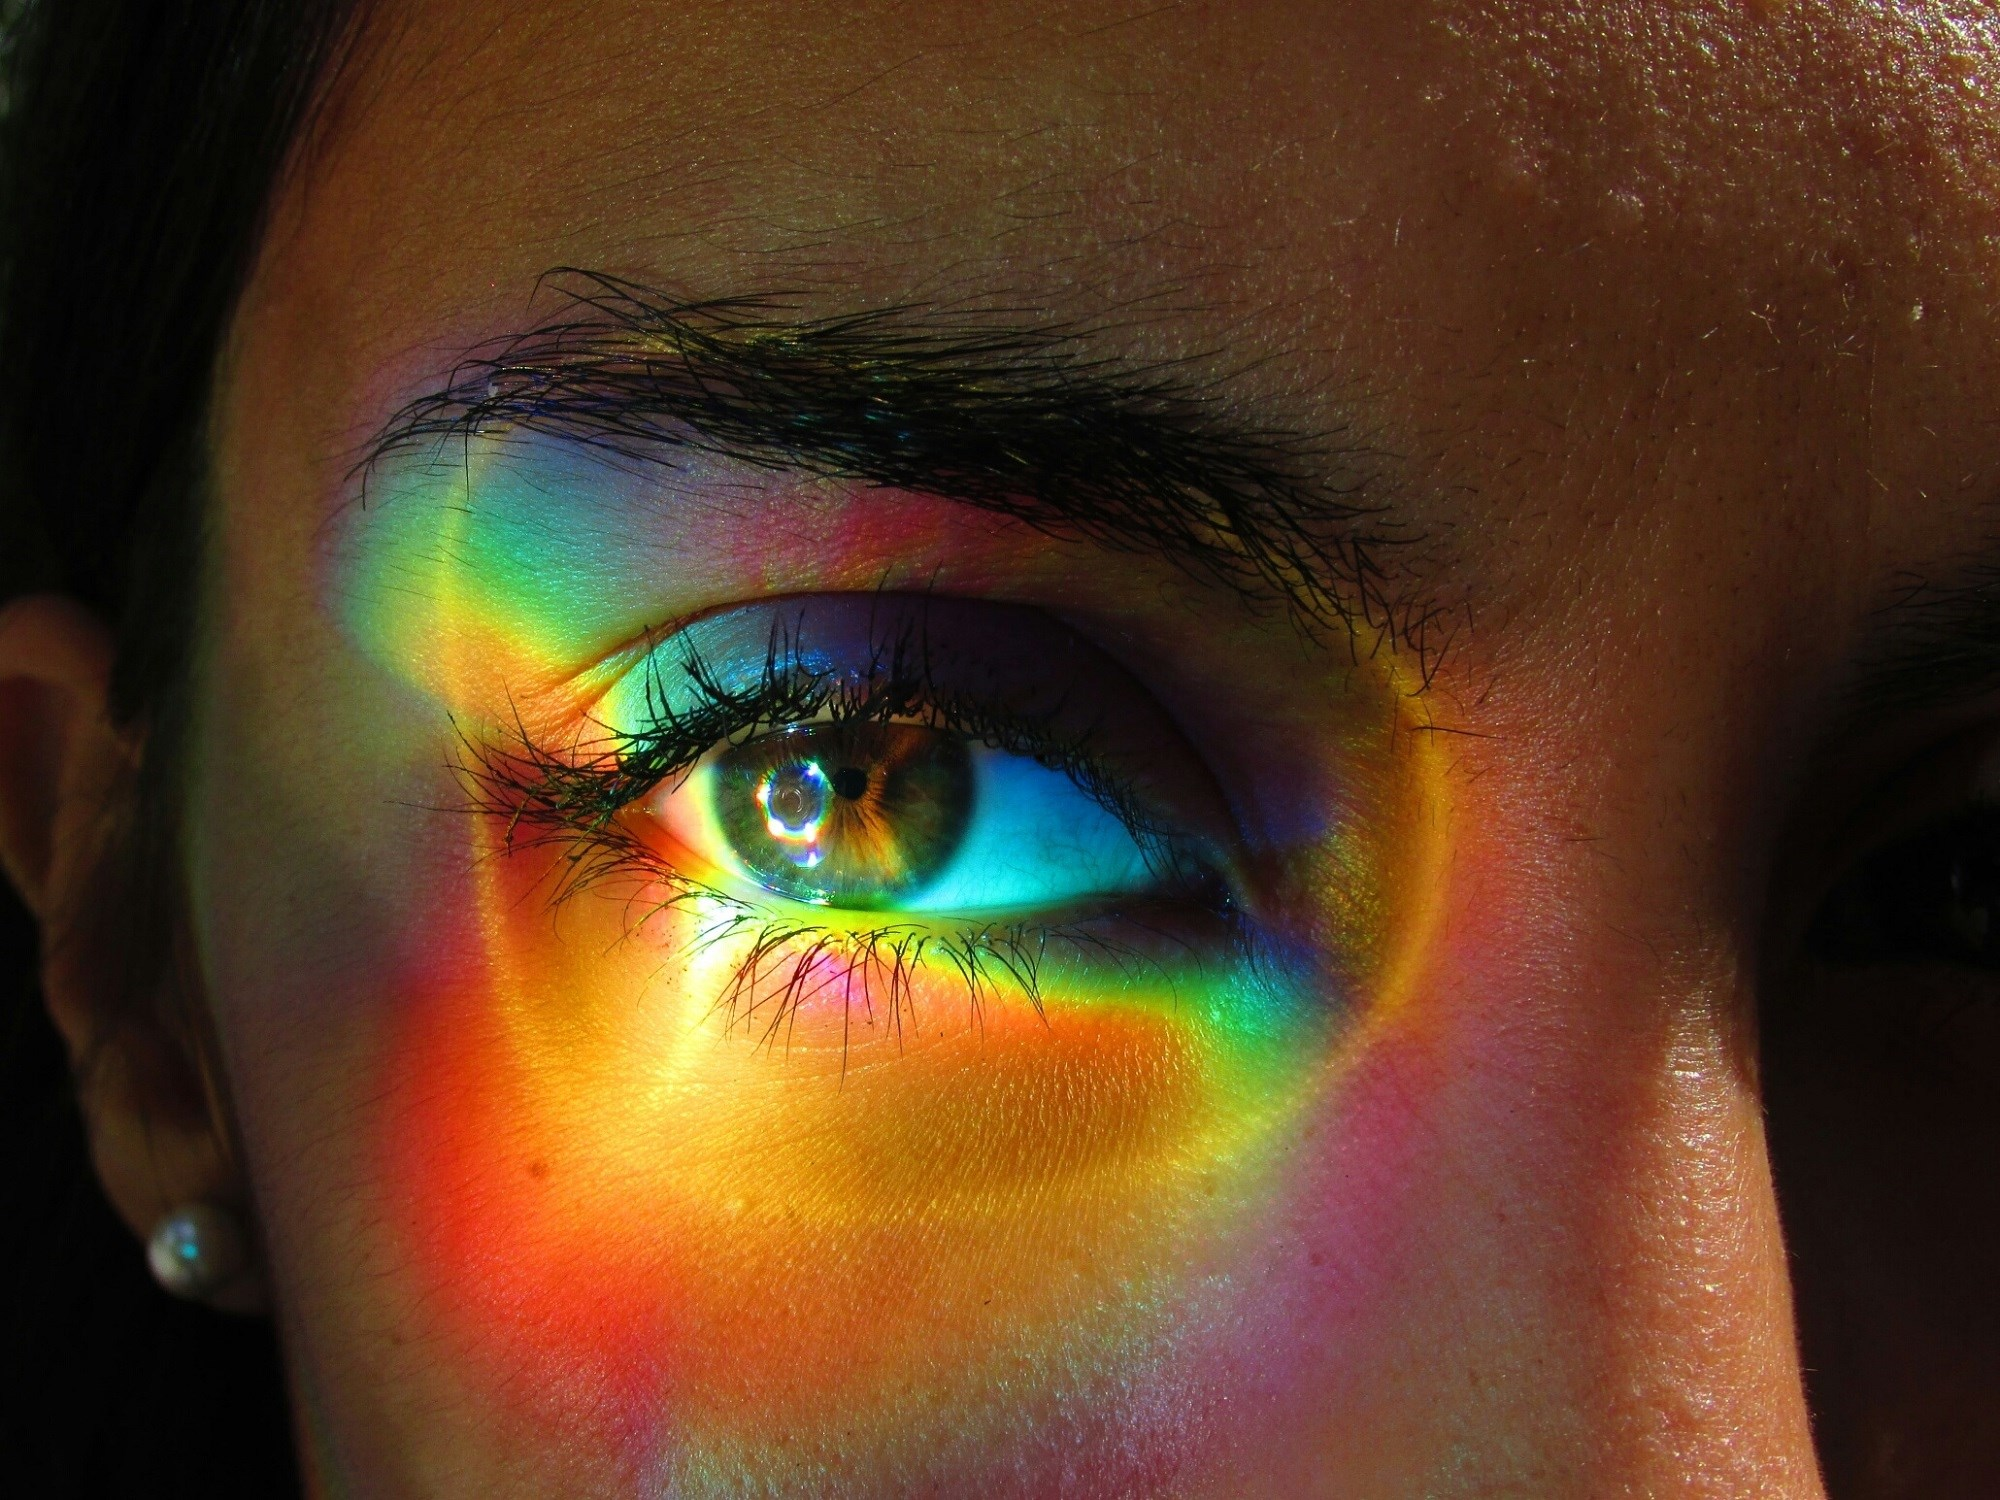 Color Vision Impairment in Schizophrenia May Be Due to Medication